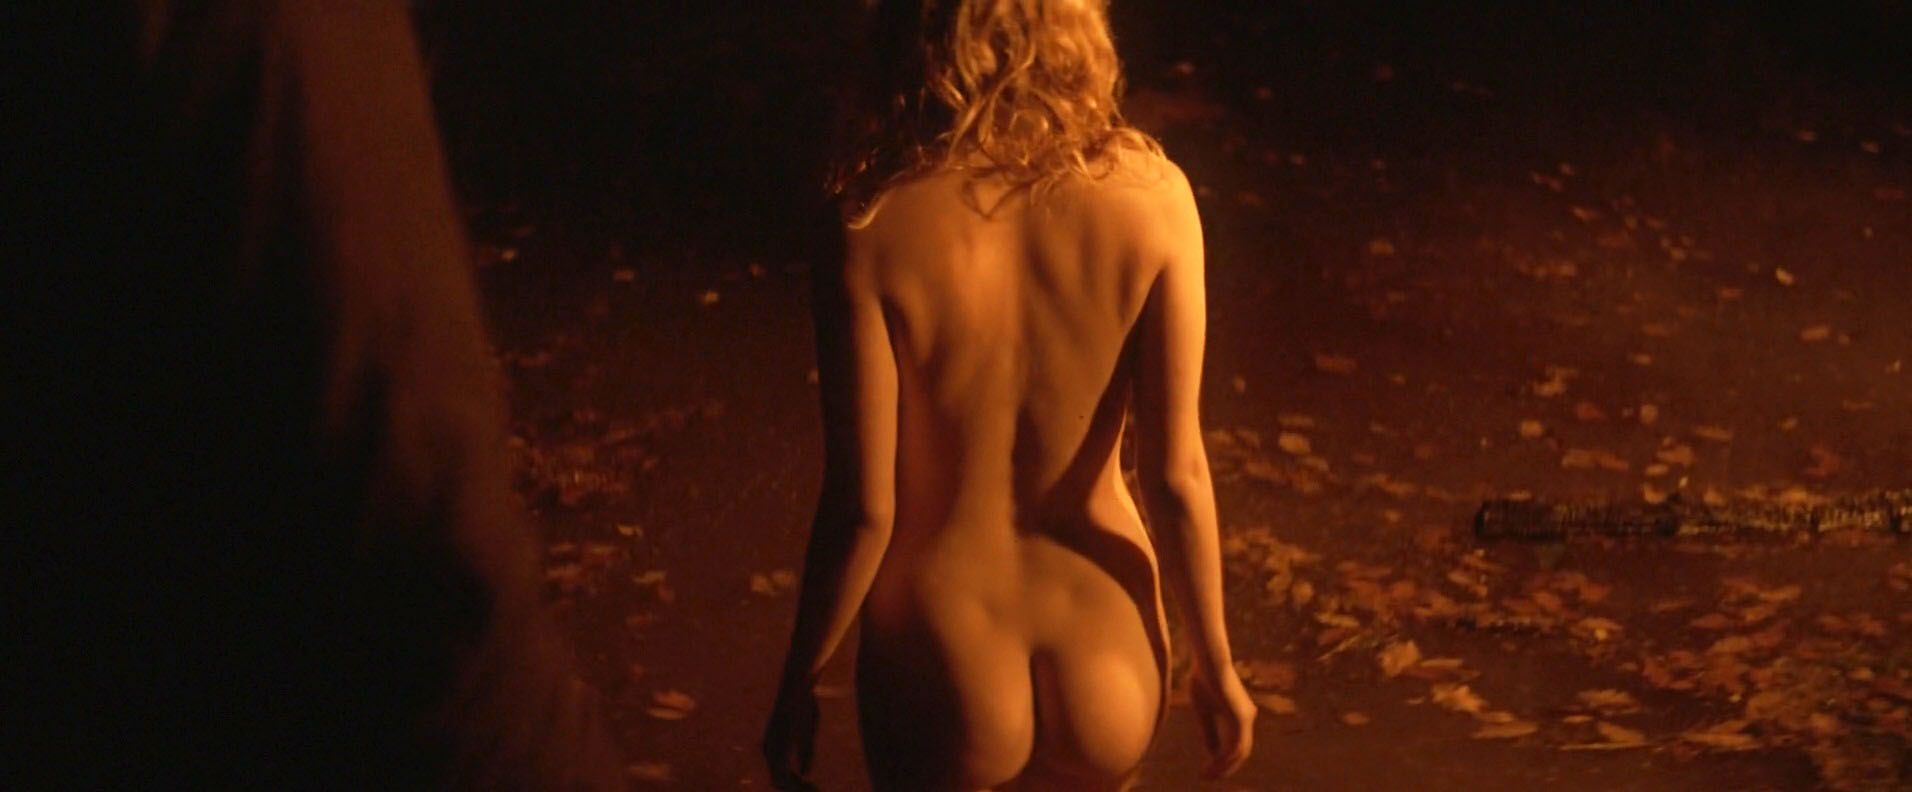 Hannah-Murray-Elinor-Crawley-Nude-2